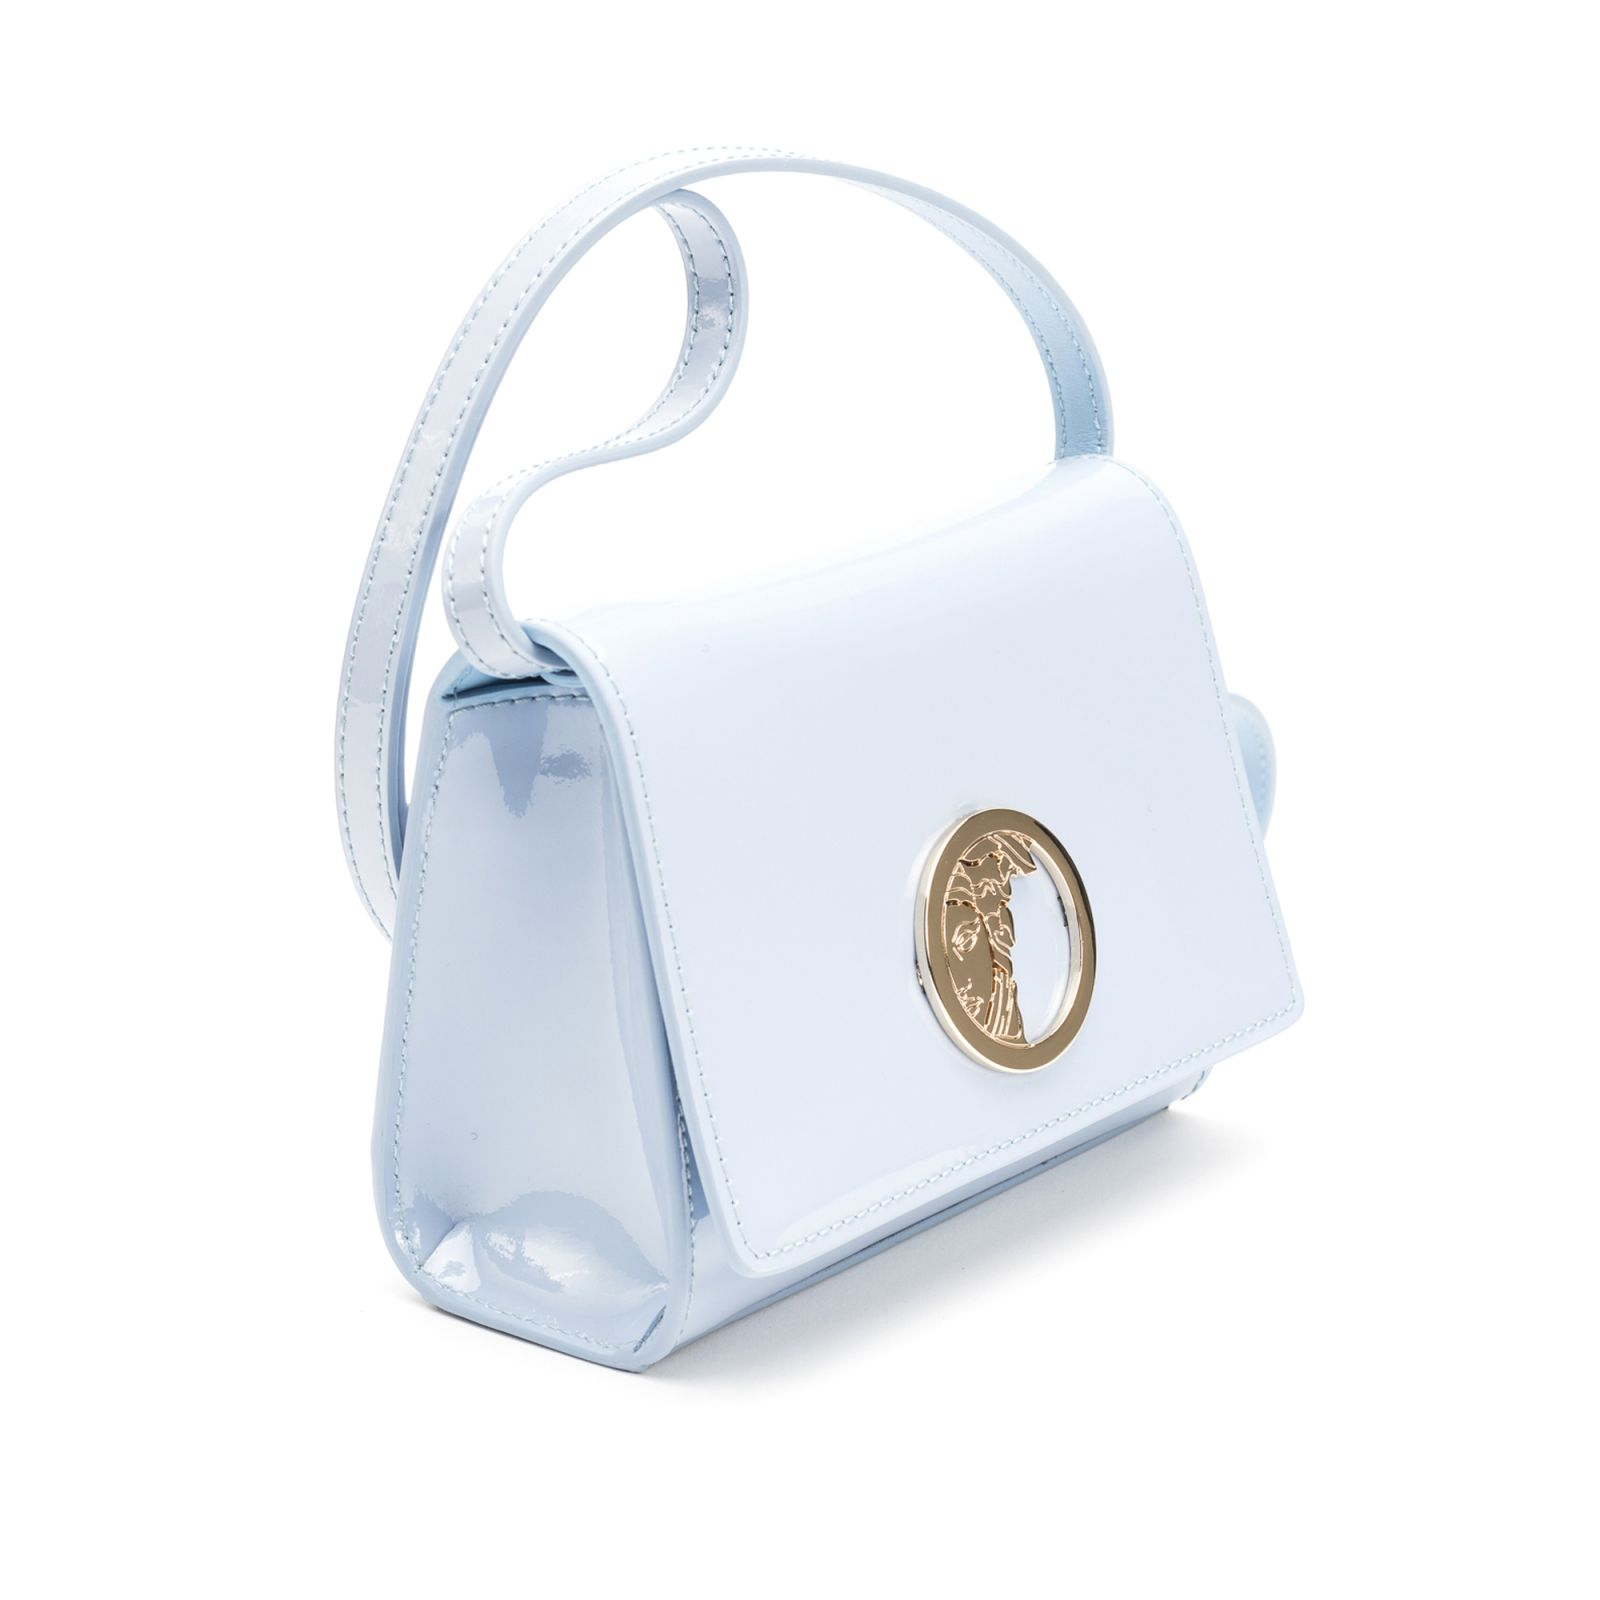 cccb9fb398a7 ... Versace Collection Versace Collection Patent Leather Shoulder Bag -  Light Blue ...